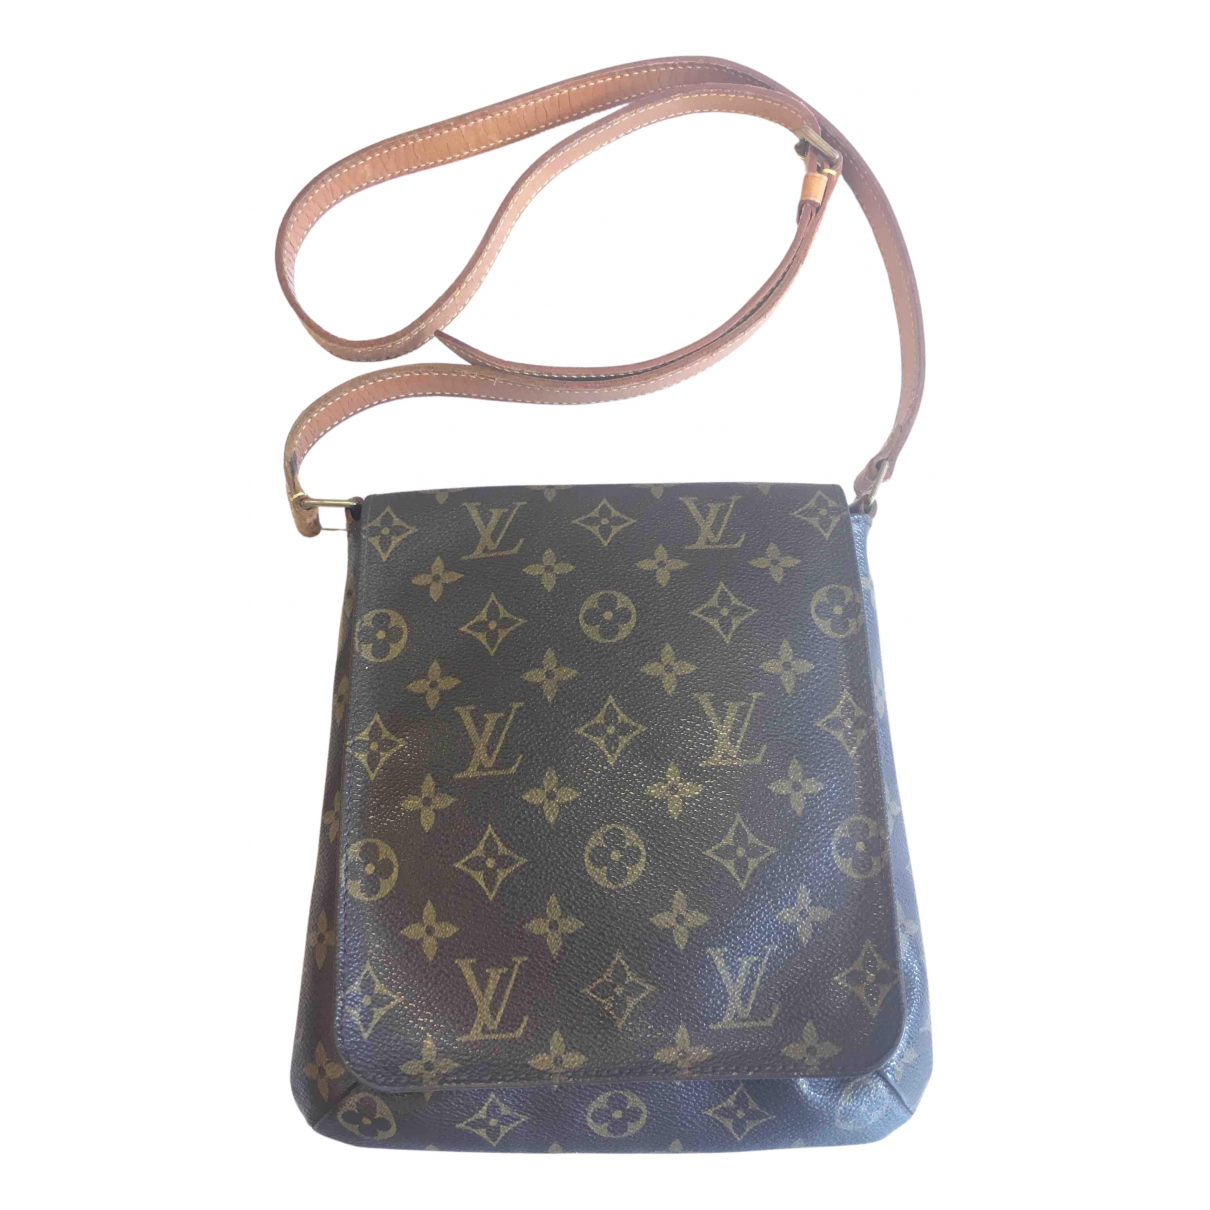 Louis Vuitton Salsa Handtasche in  Braun Leinen